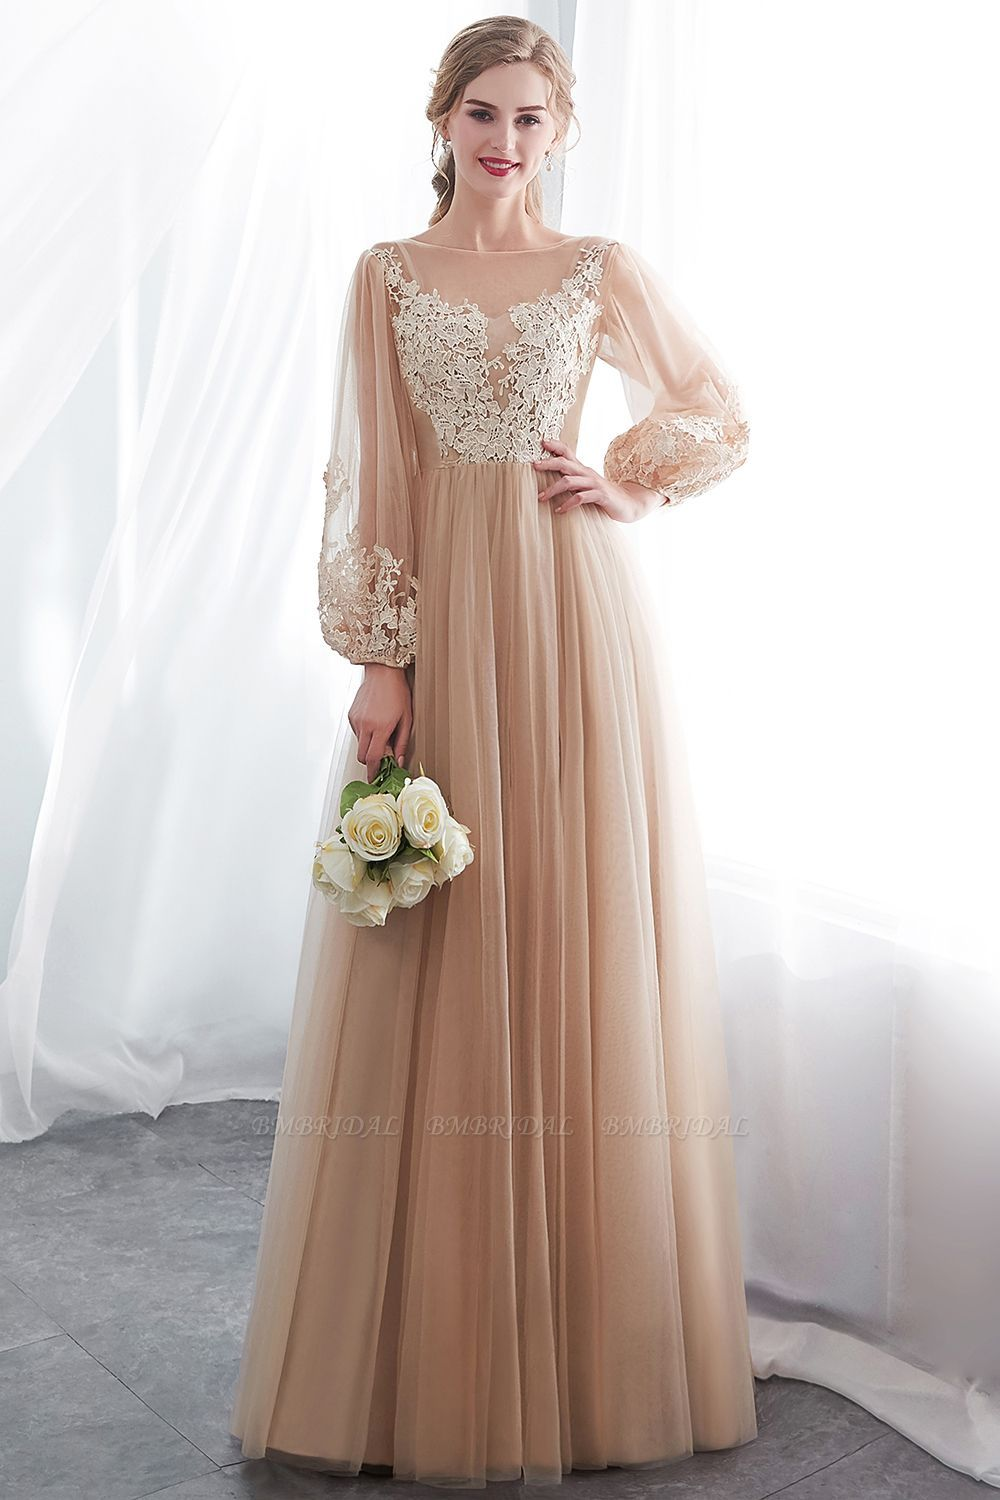 Bmbridal Gorgeous Long Sleeve Tulle Prom Dress Long Evening Party Gowns With Appliques In 2021 Prom Dresses With Sleeves Prom Dresses Long With Sleeves Champagne Evening Dress [ 1500 x 1000 Pixel ]